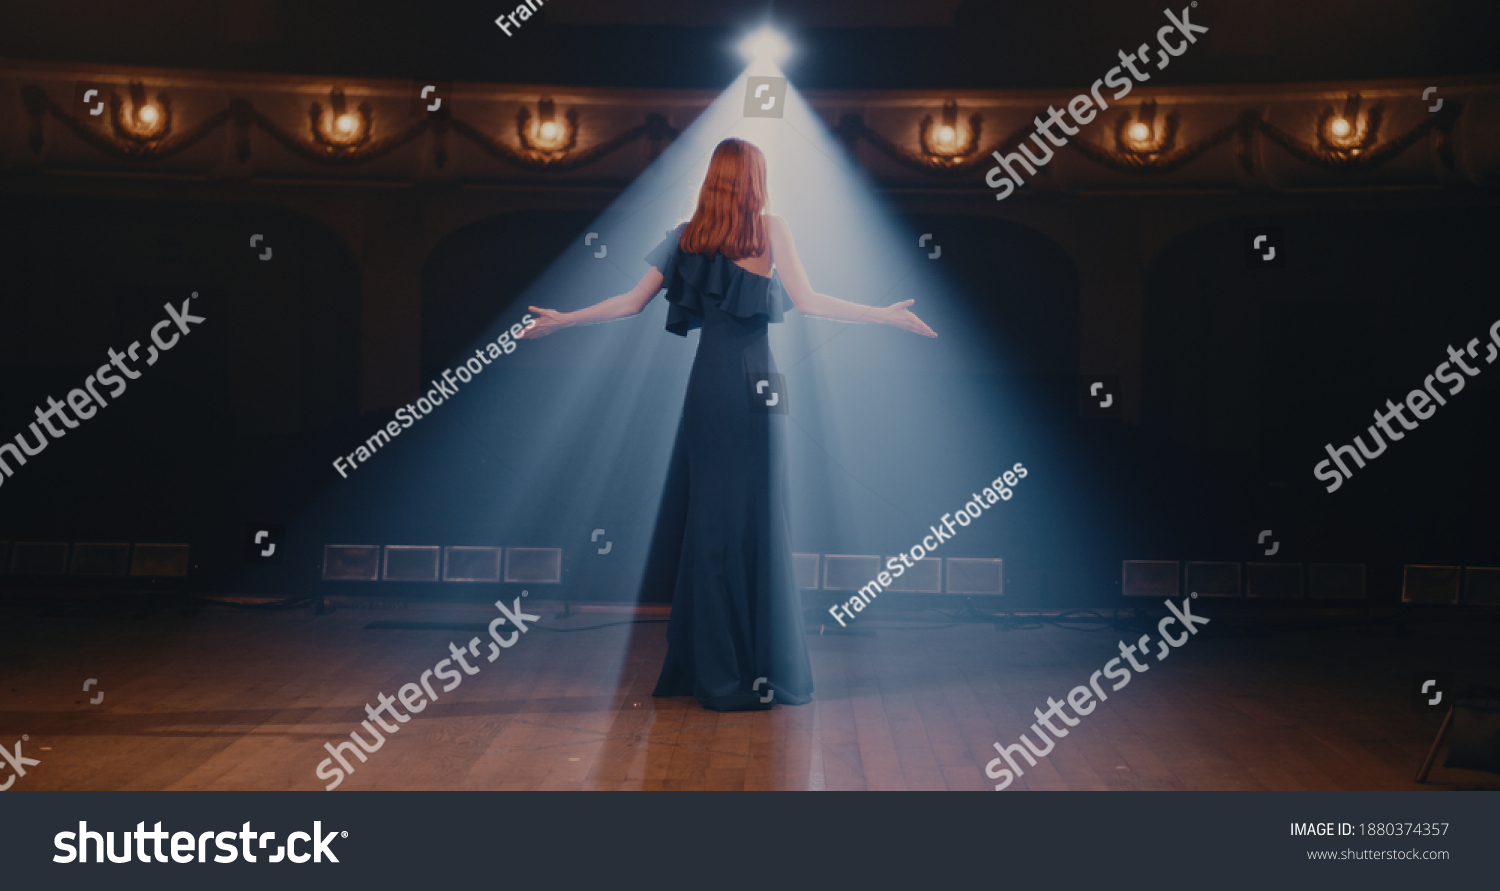 Young woman in elegant dress gesticulating and talking passionately with audience then walking away in end of performance in theater #1880374357